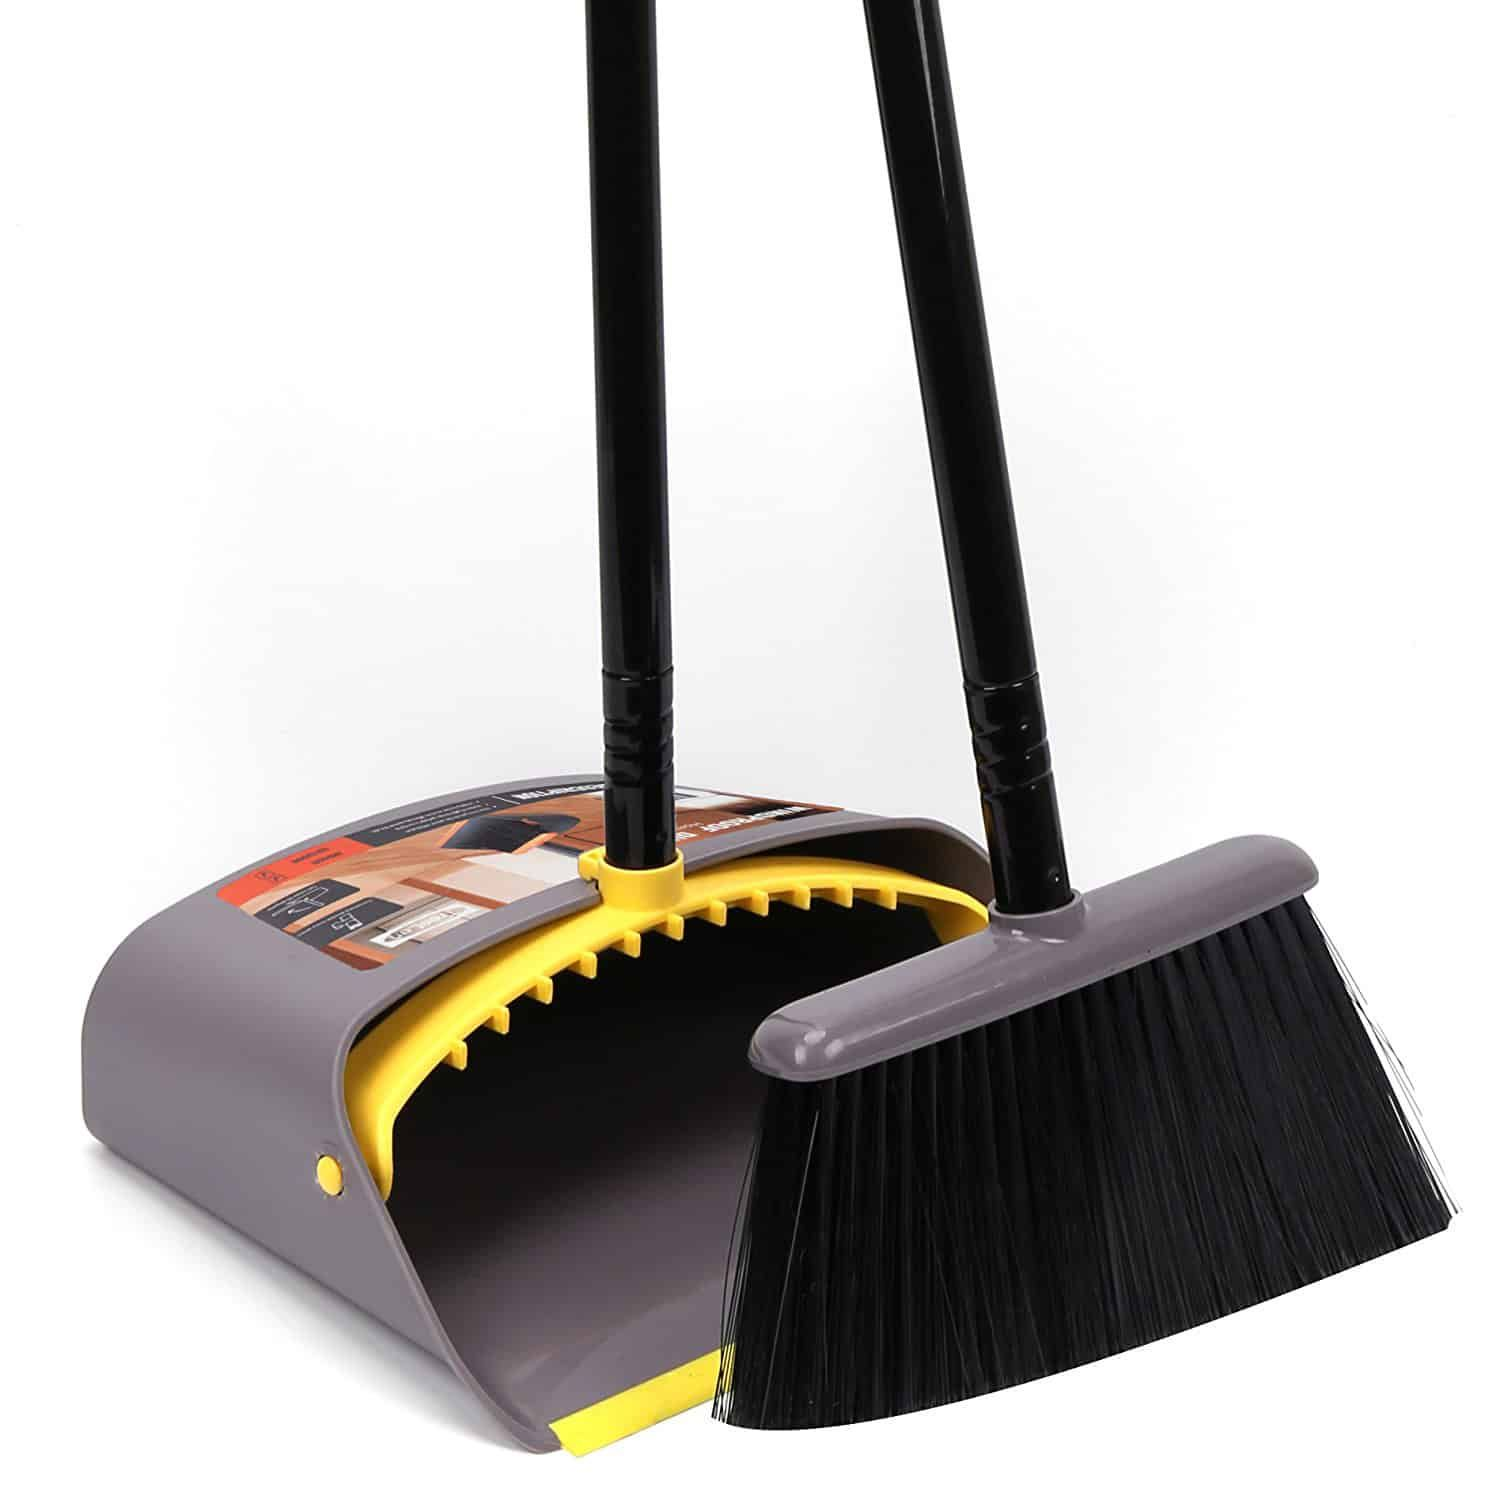 Long Handle Standing Upright Dustpan And Broom Set By Like Broom And Dustpan Best Broom Broom Dust pan and broom sets